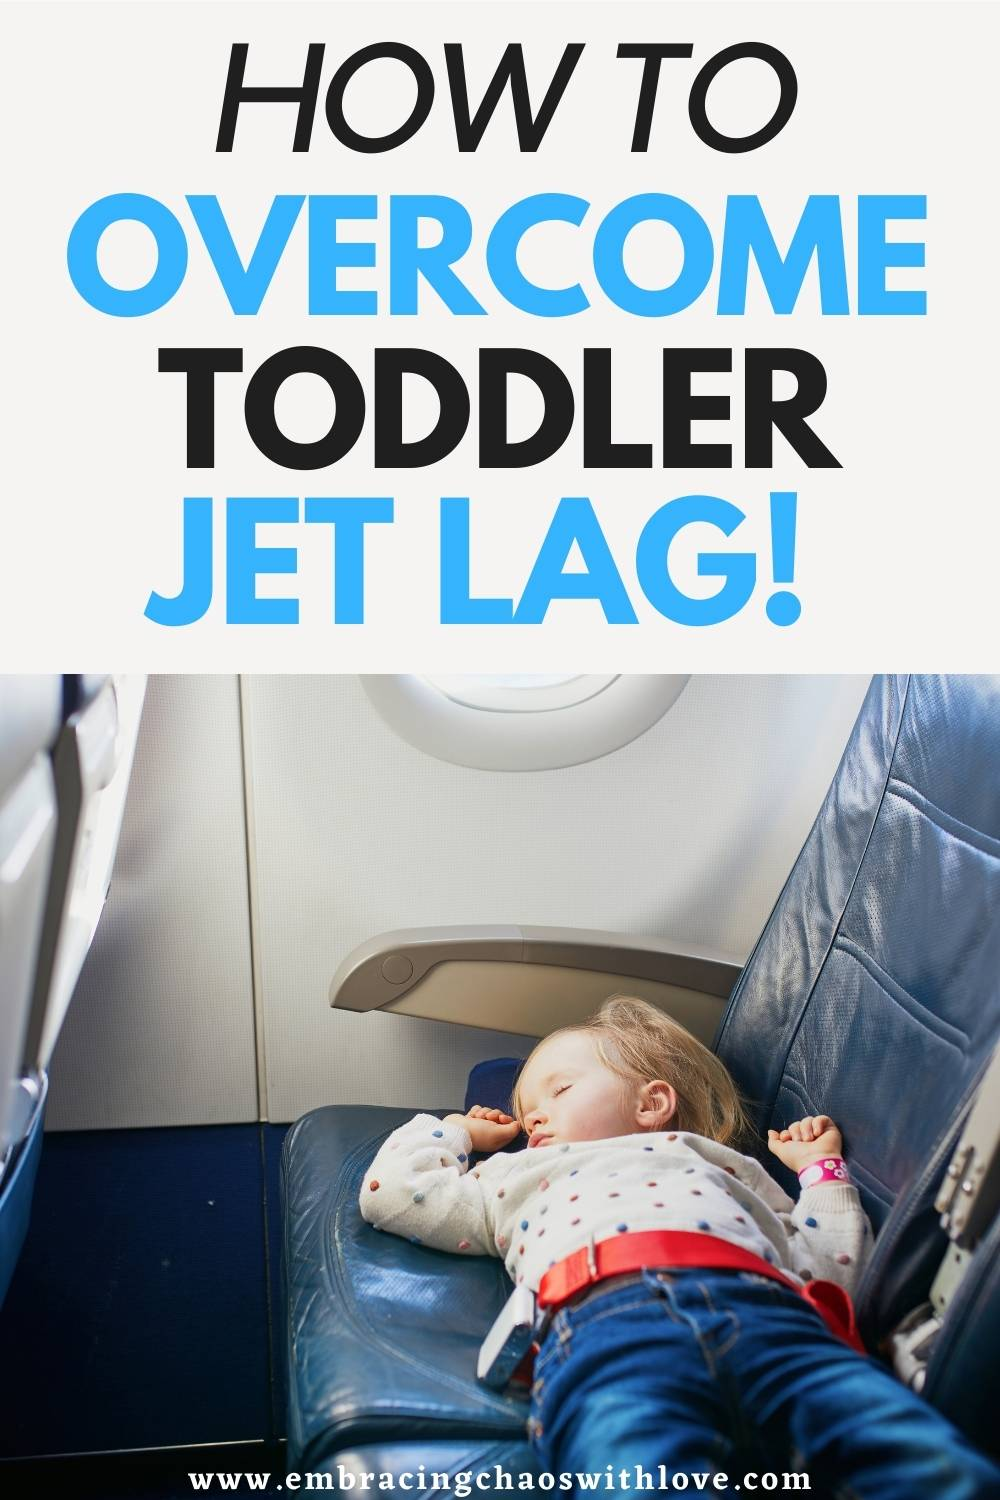 Toddler Jet Lag: Tips to Help a Little One Make the Transition